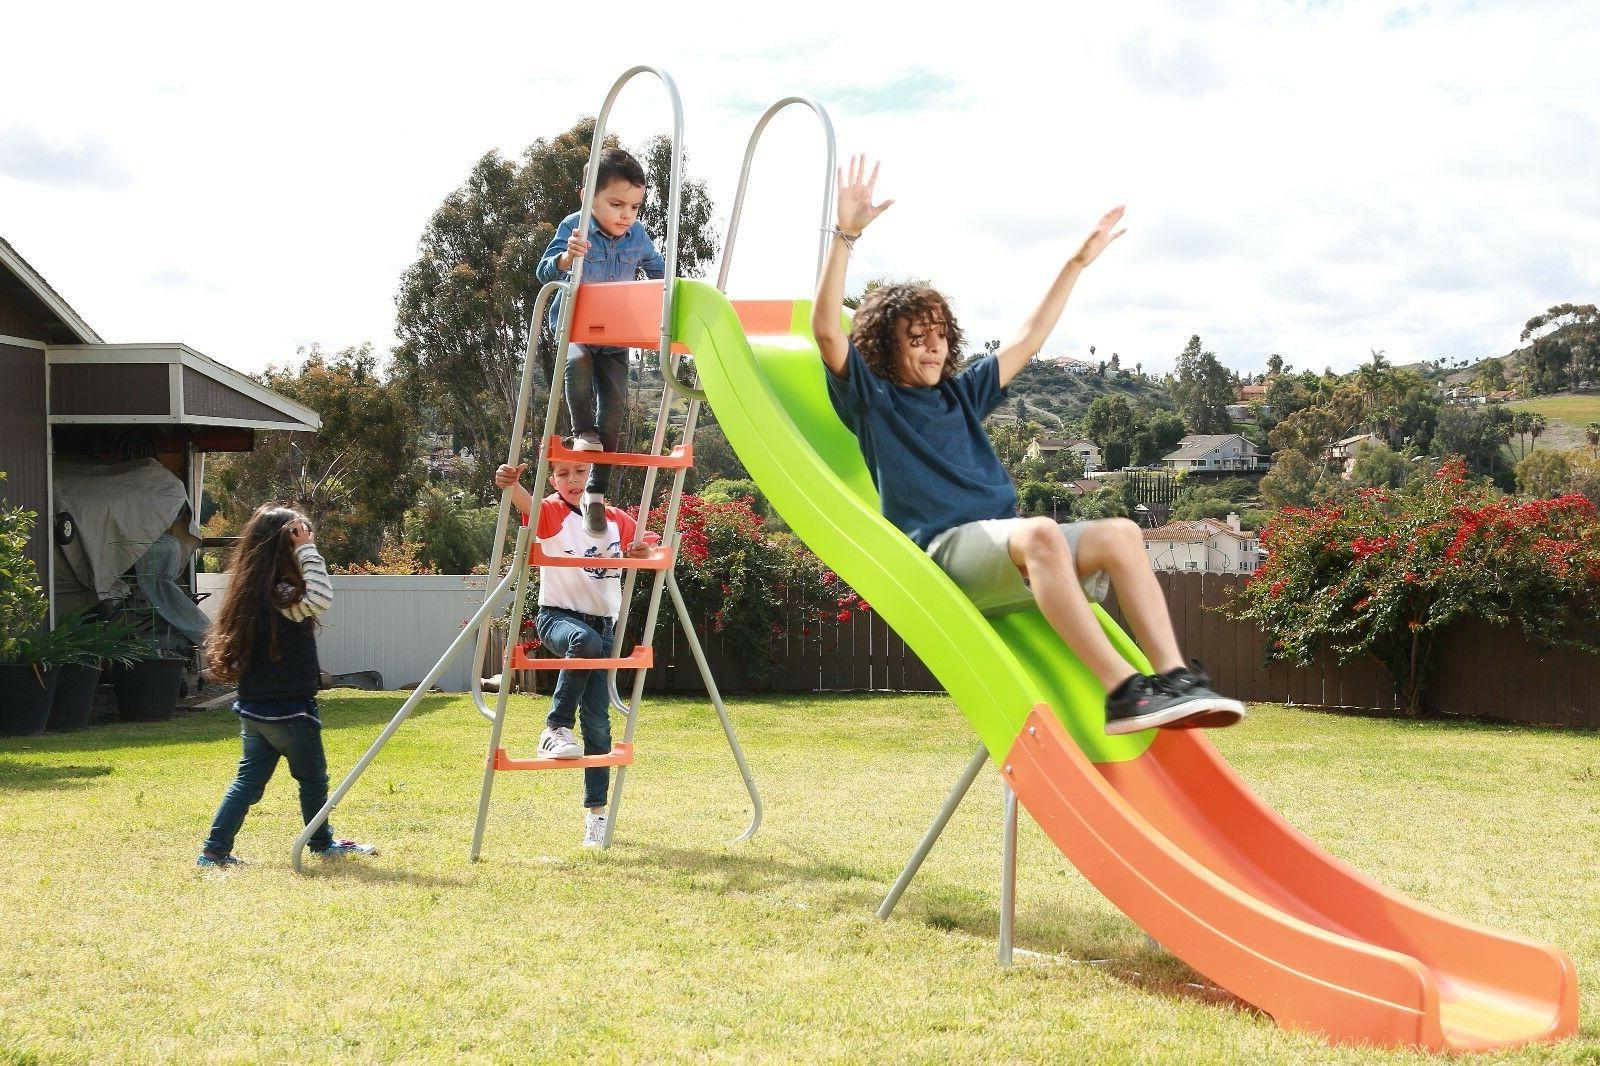 SLIDEWHIZZER - Summer Playground Fun